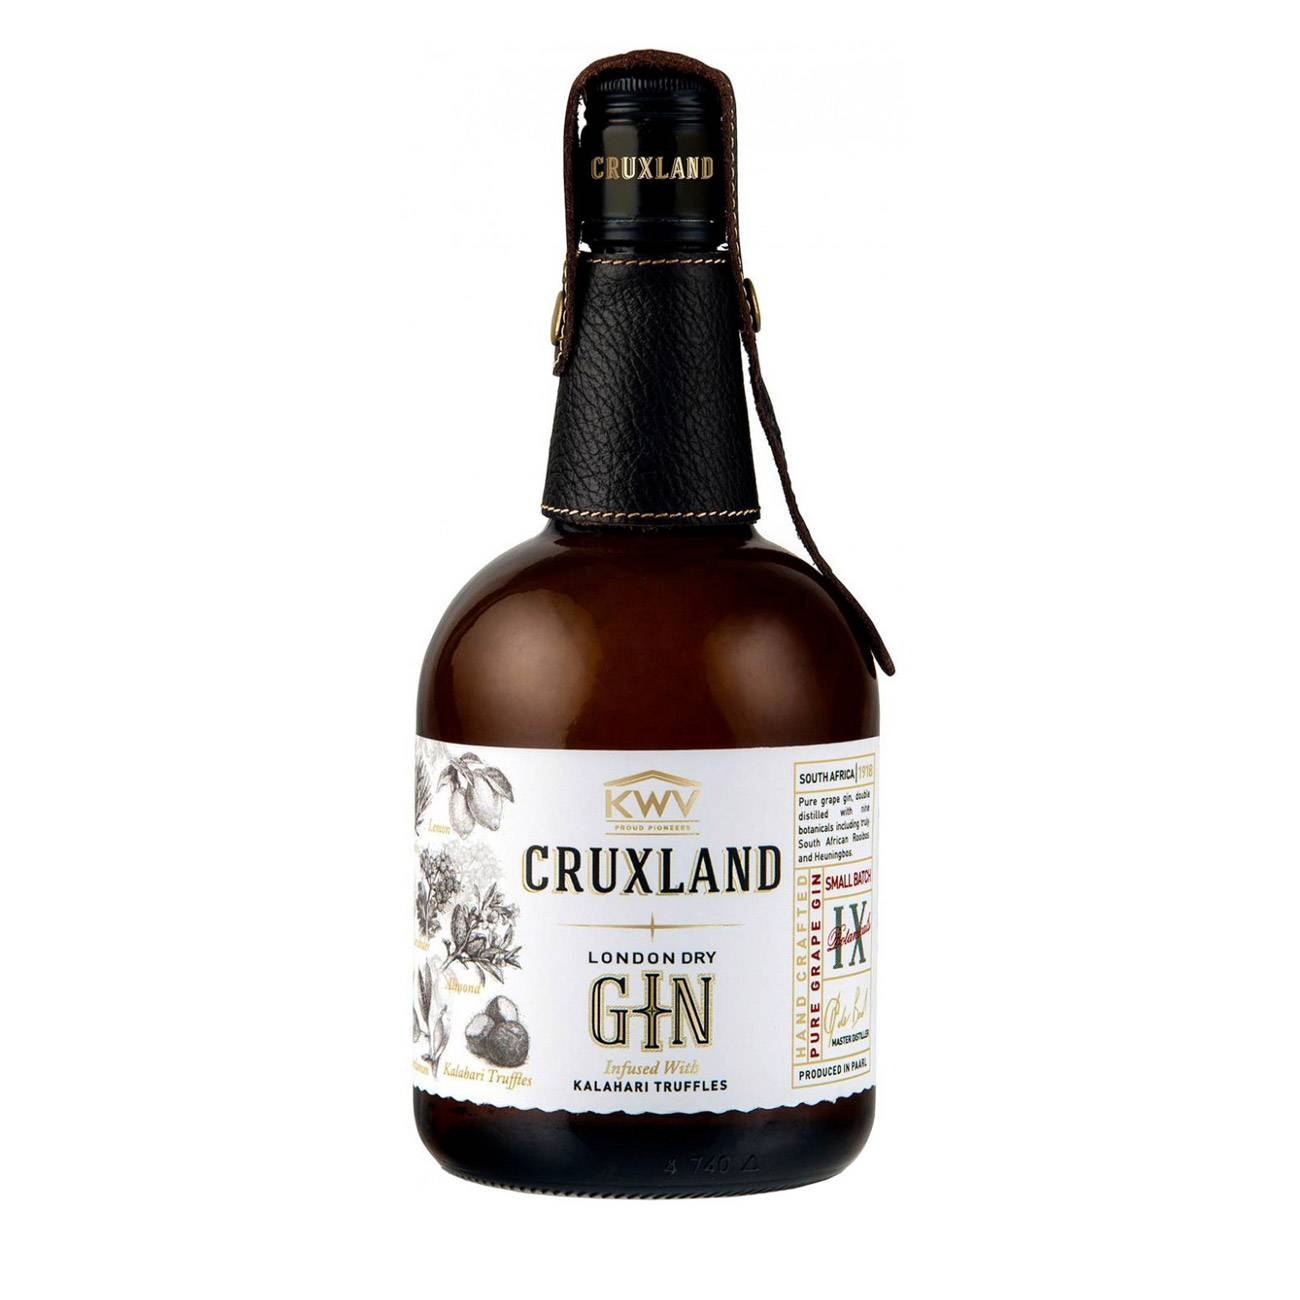 CRUXLAND LONDON DRY GIN 1000ml